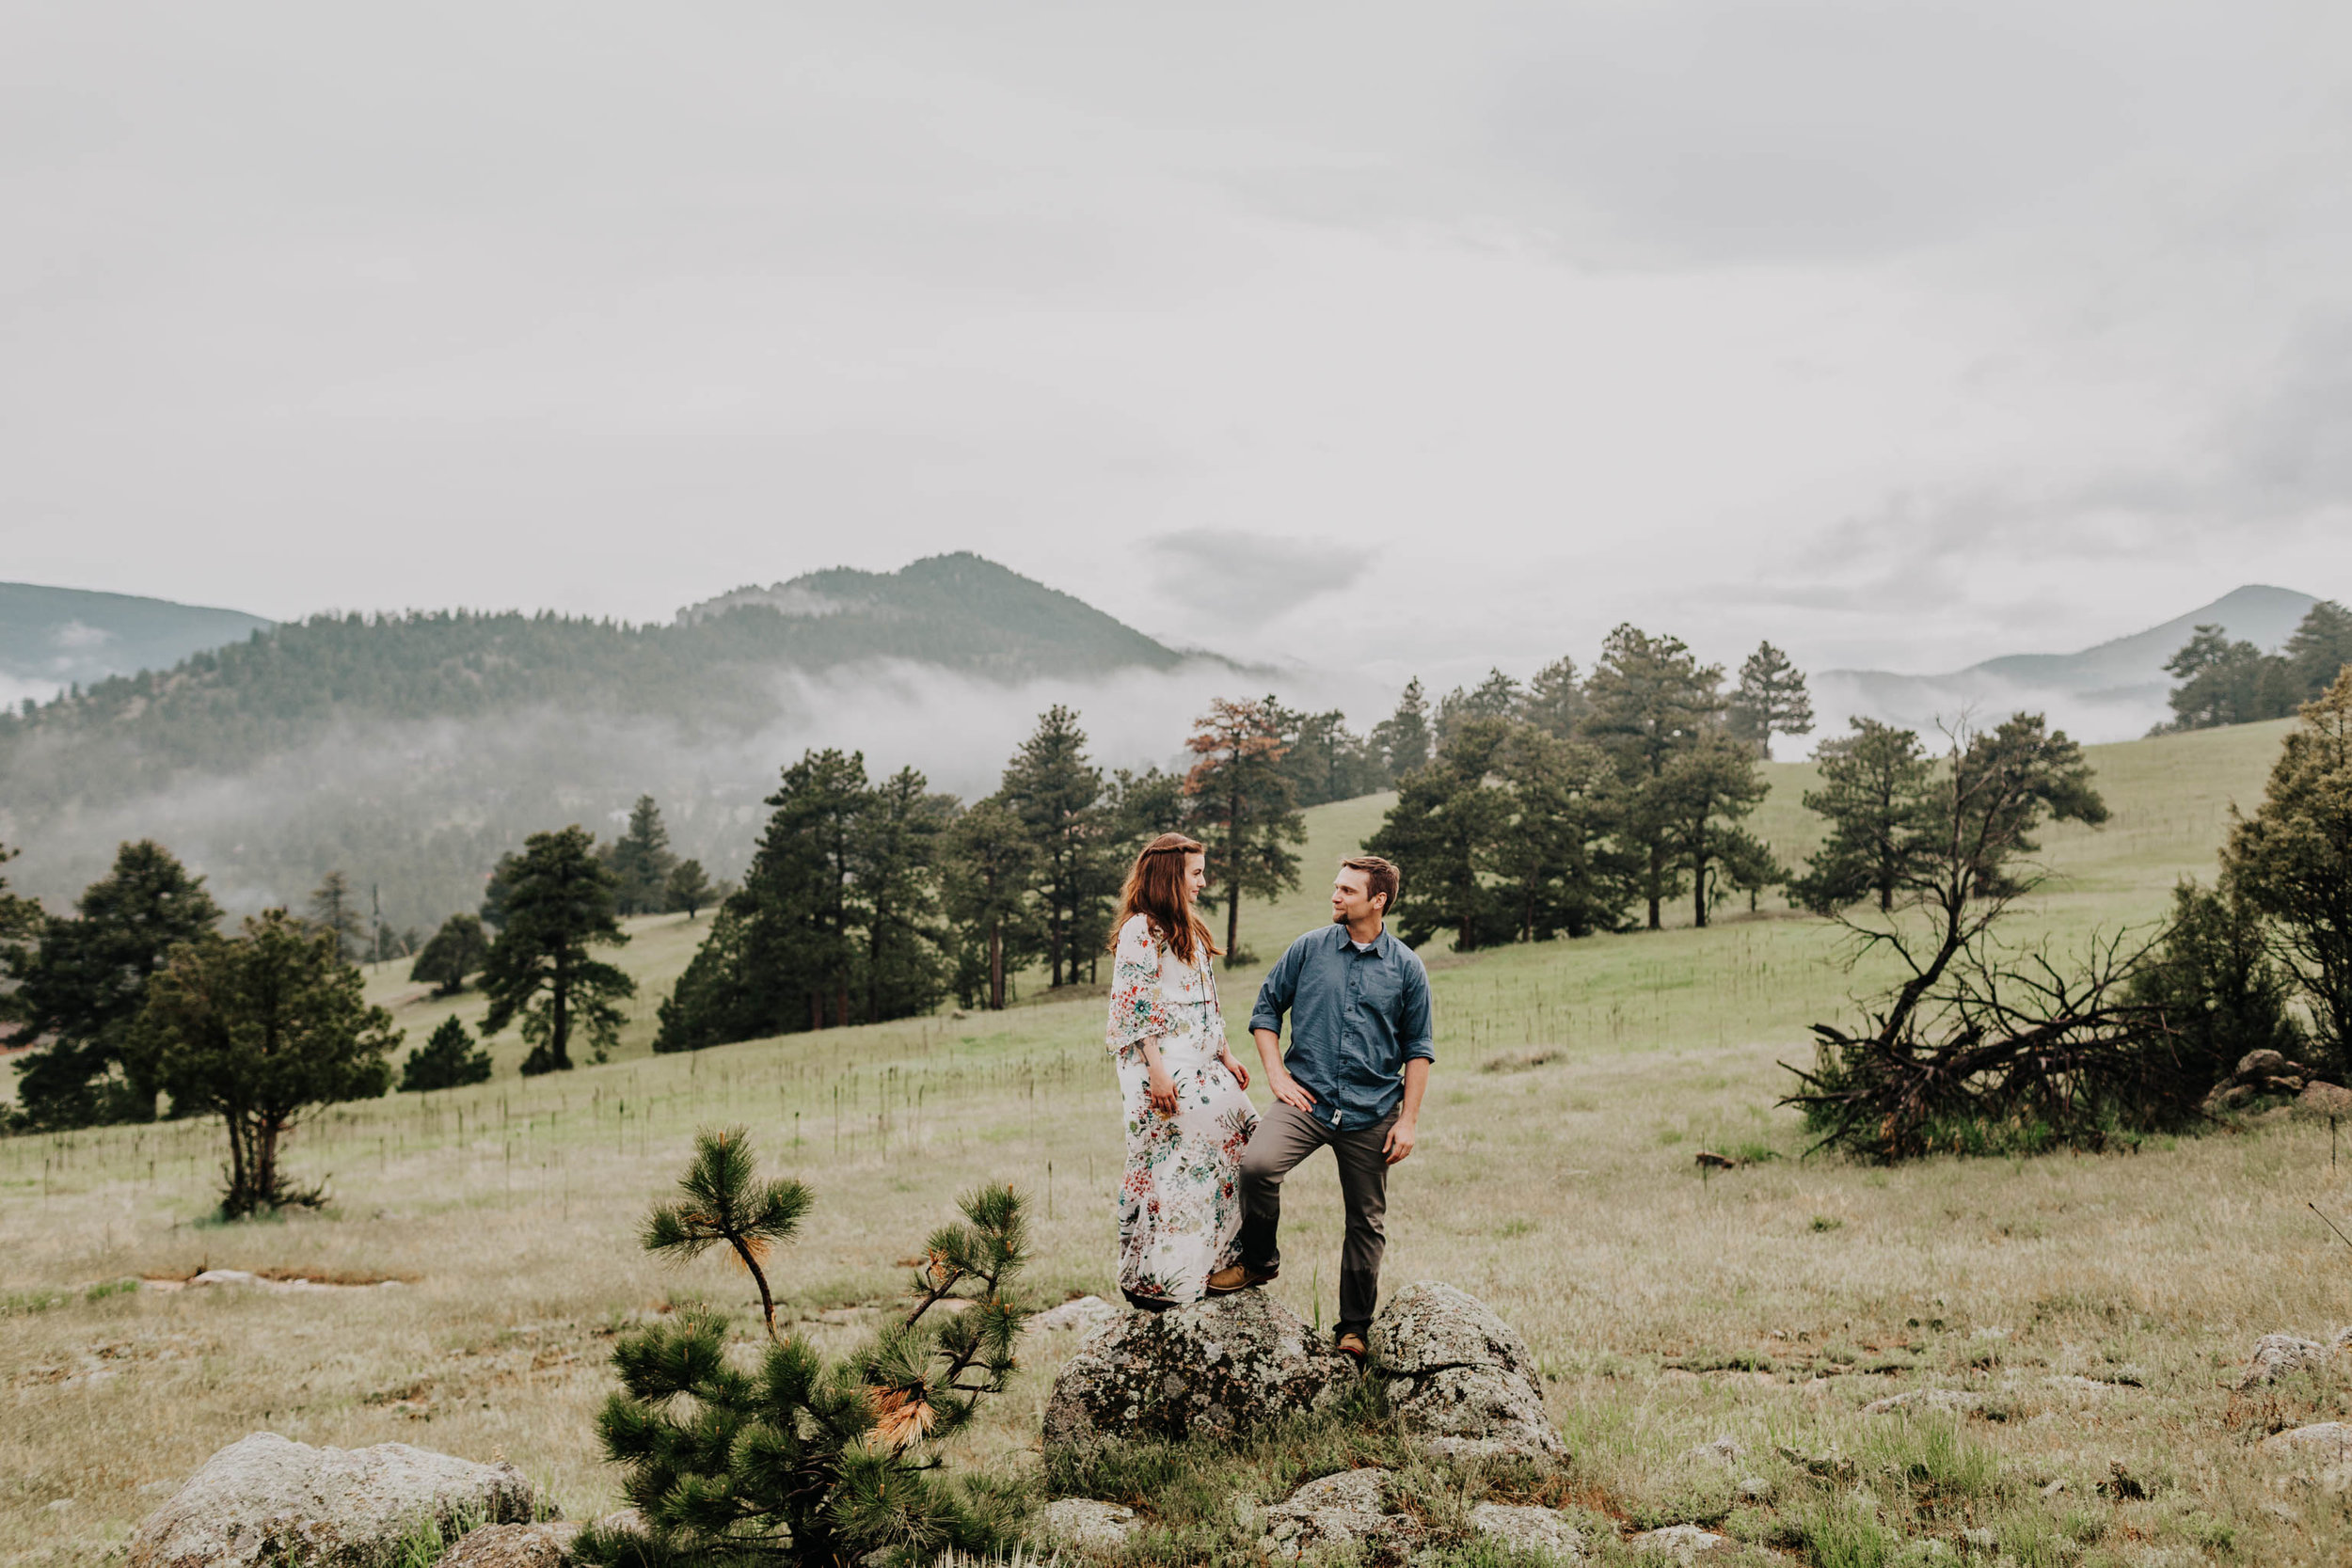 Sheena_Shahangian_Photography_Engagement_Photo_Shoot_Shelby_and_Andrew_Boulder_Colorado-86.jpg